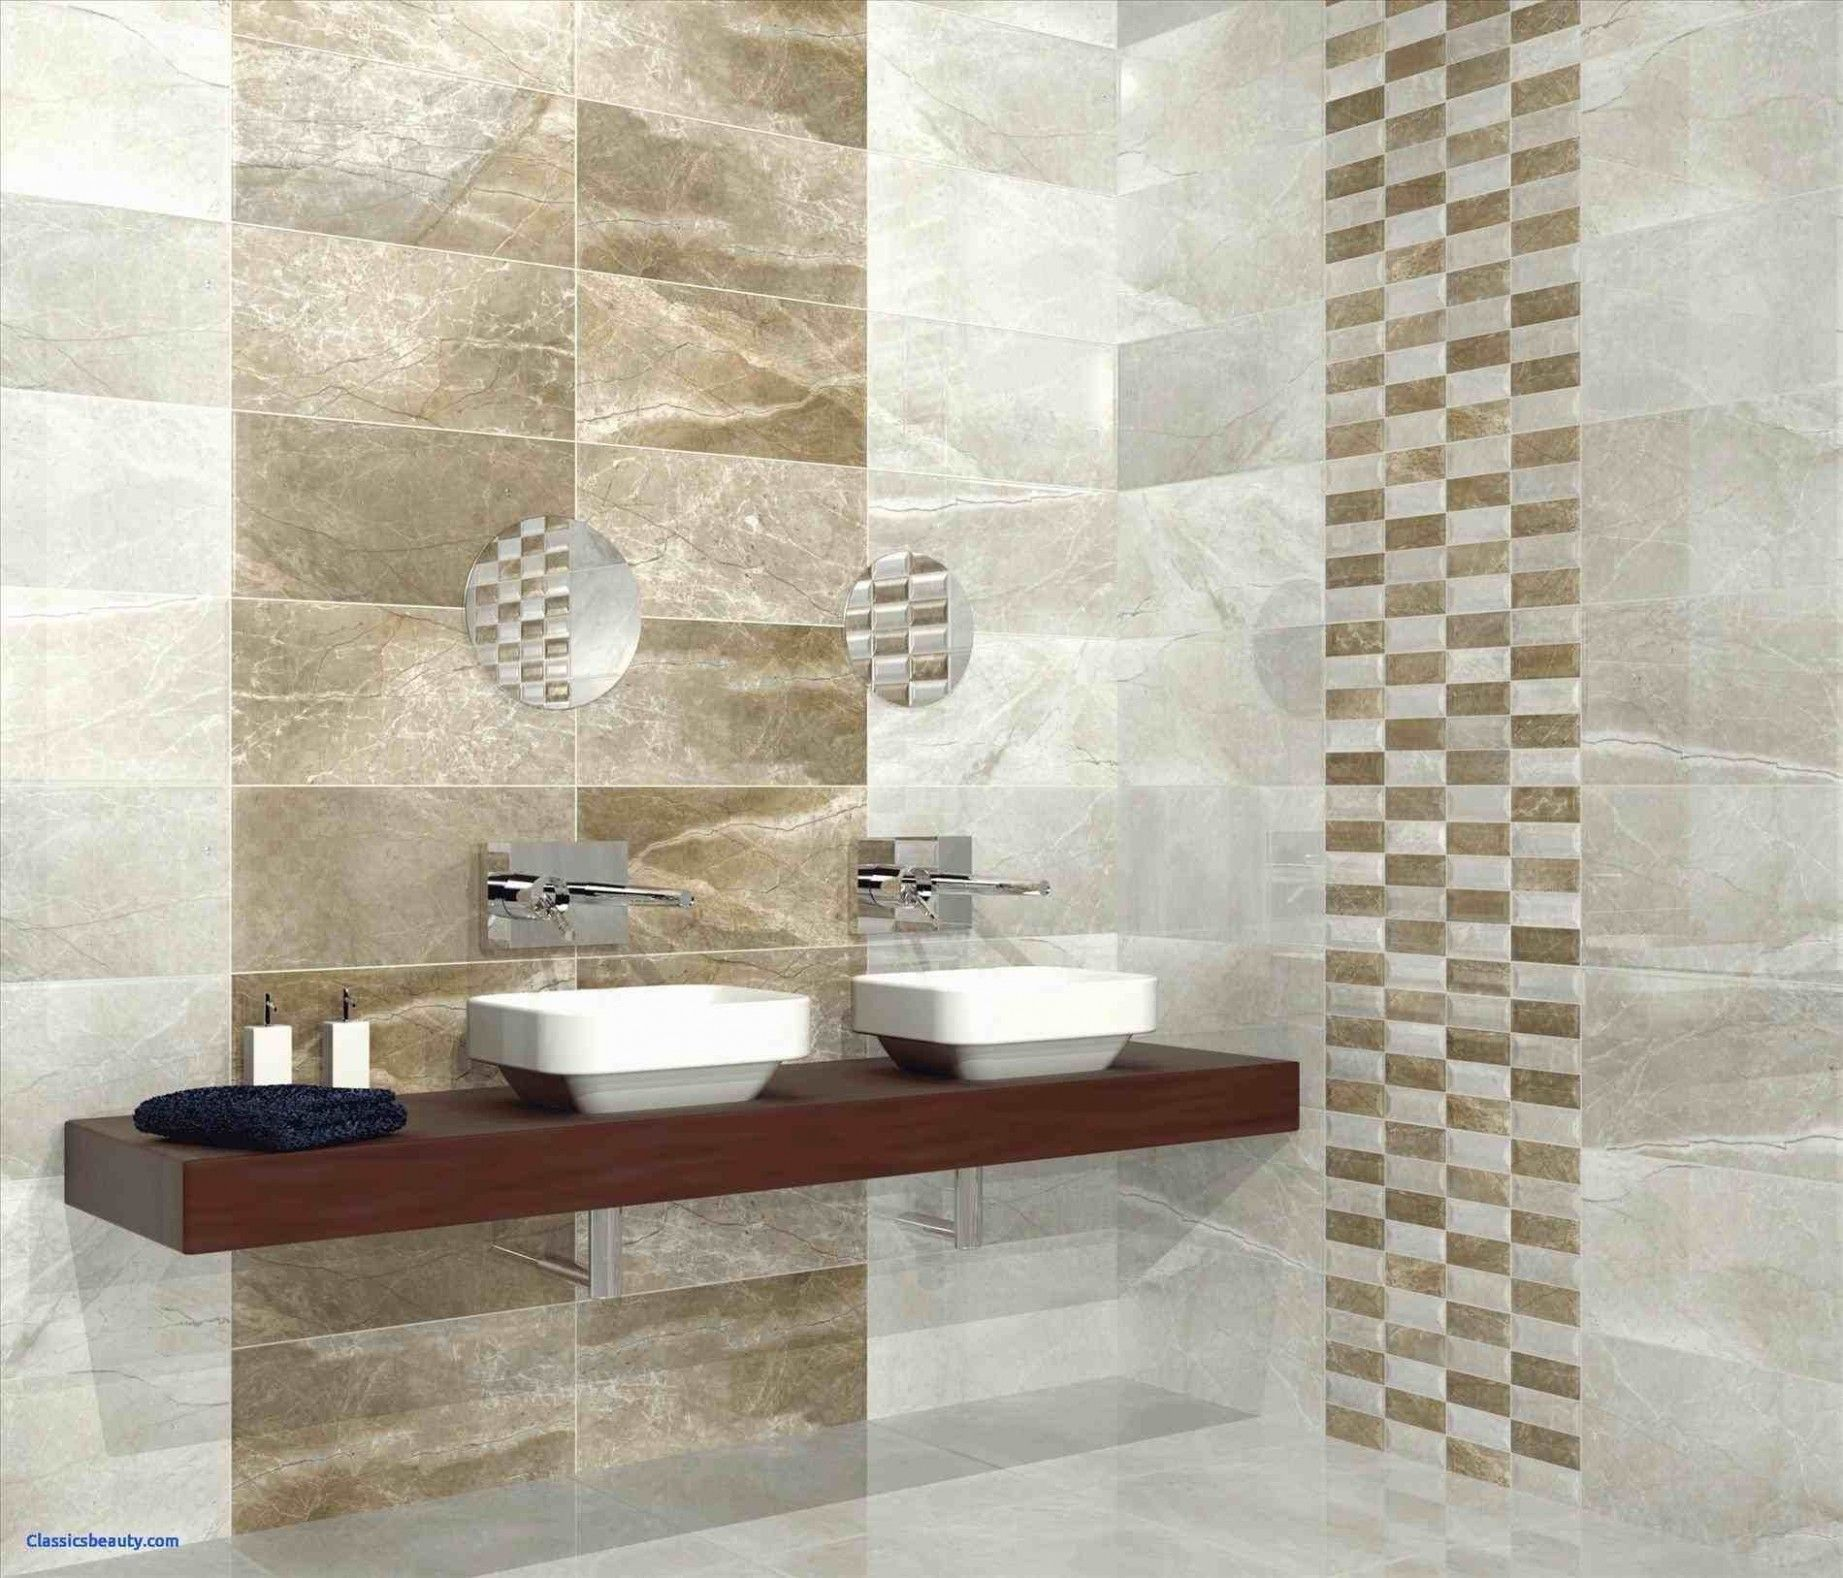 Indian Bathroom Floor Tiles Design Pictures Without Experimenting And Zeroing In On A Arrangement Or A Specific Design Big Tiles In Solid Colours Would Accompl Di 2020